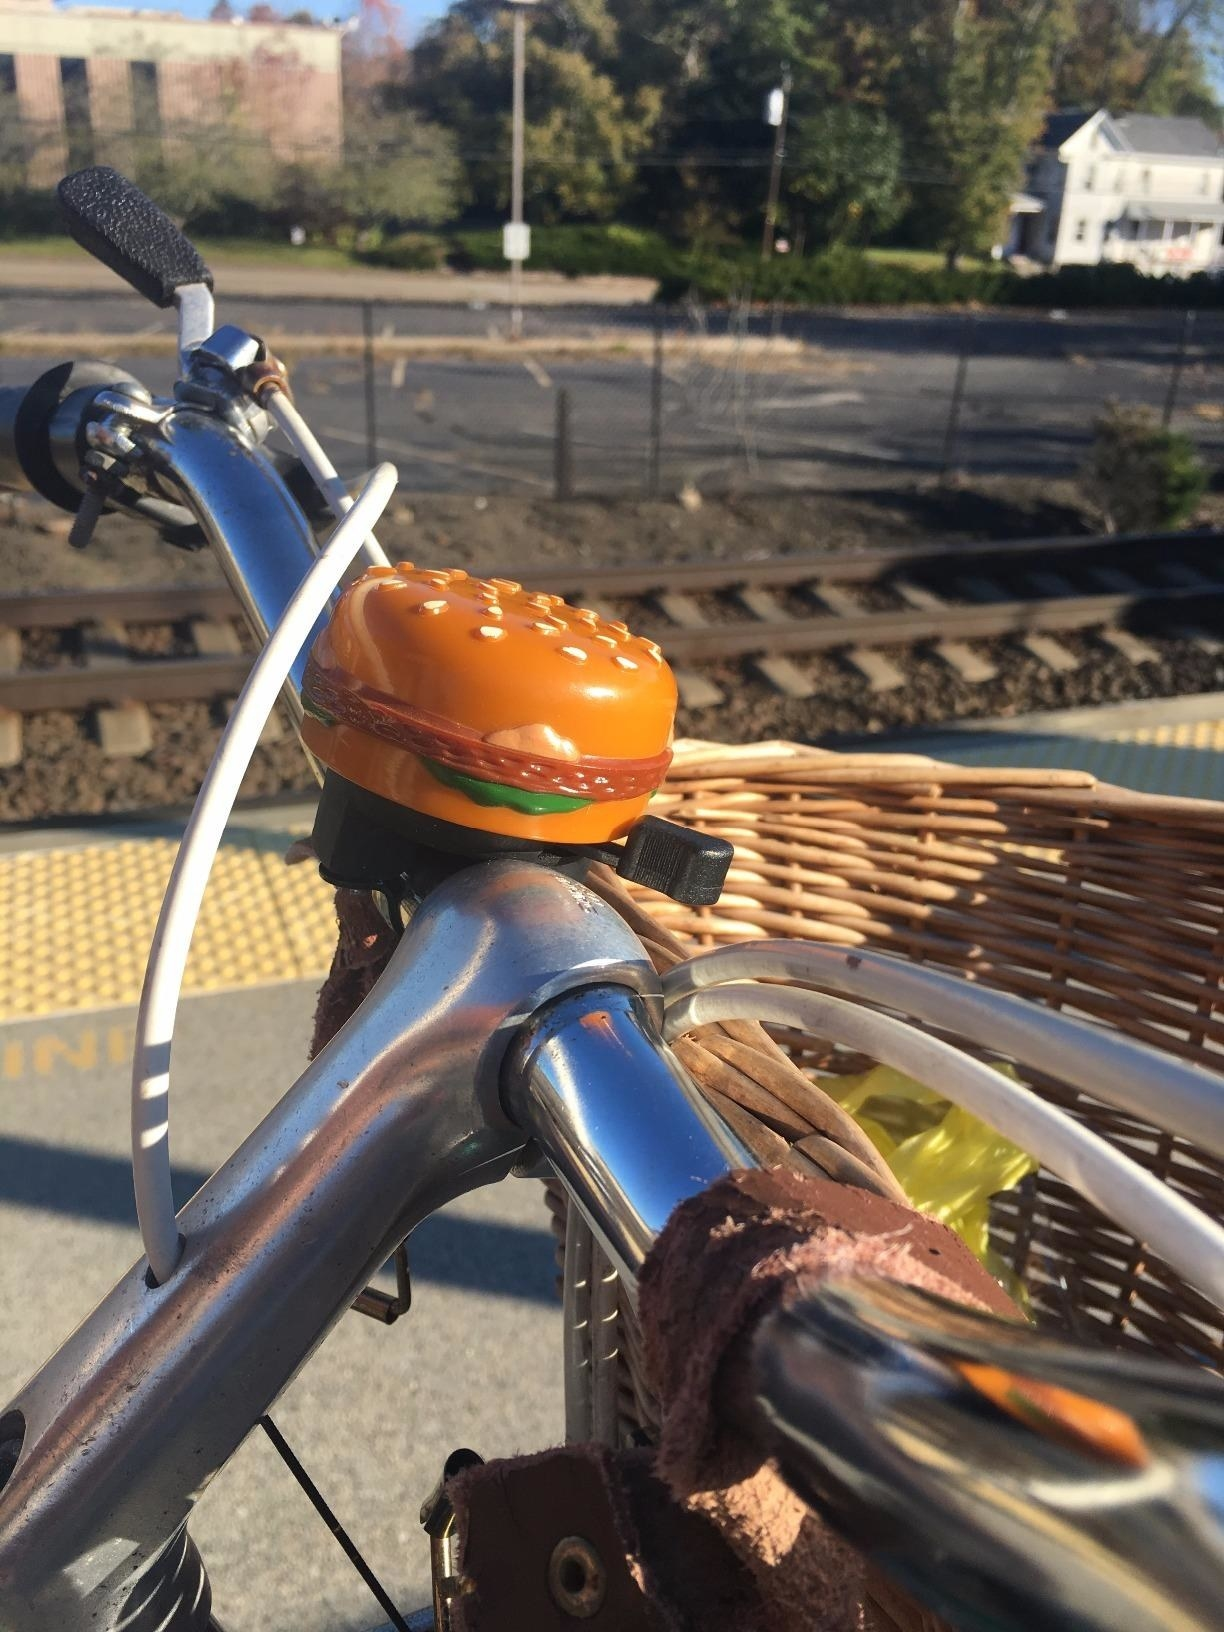 burger shaped bike bell